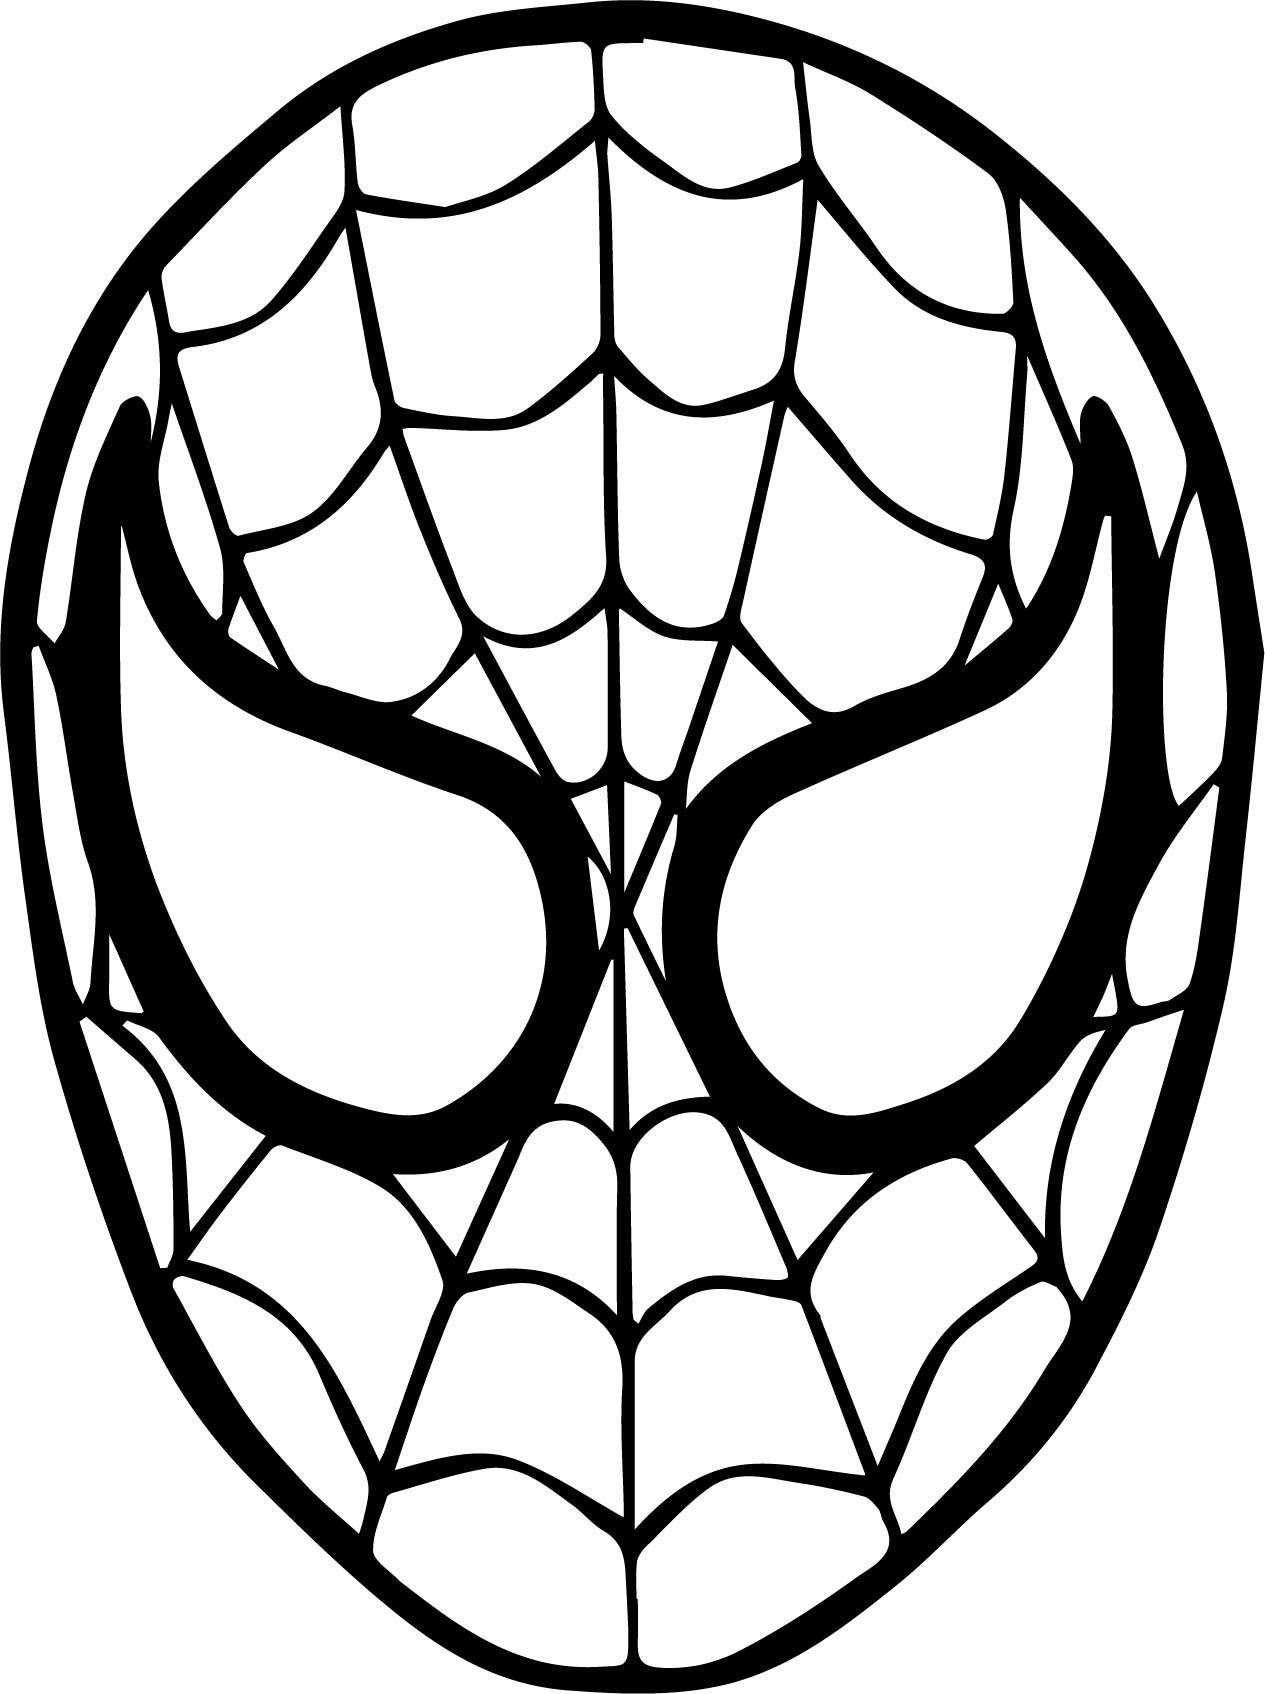 coloring pages spiderman masks - photo#9